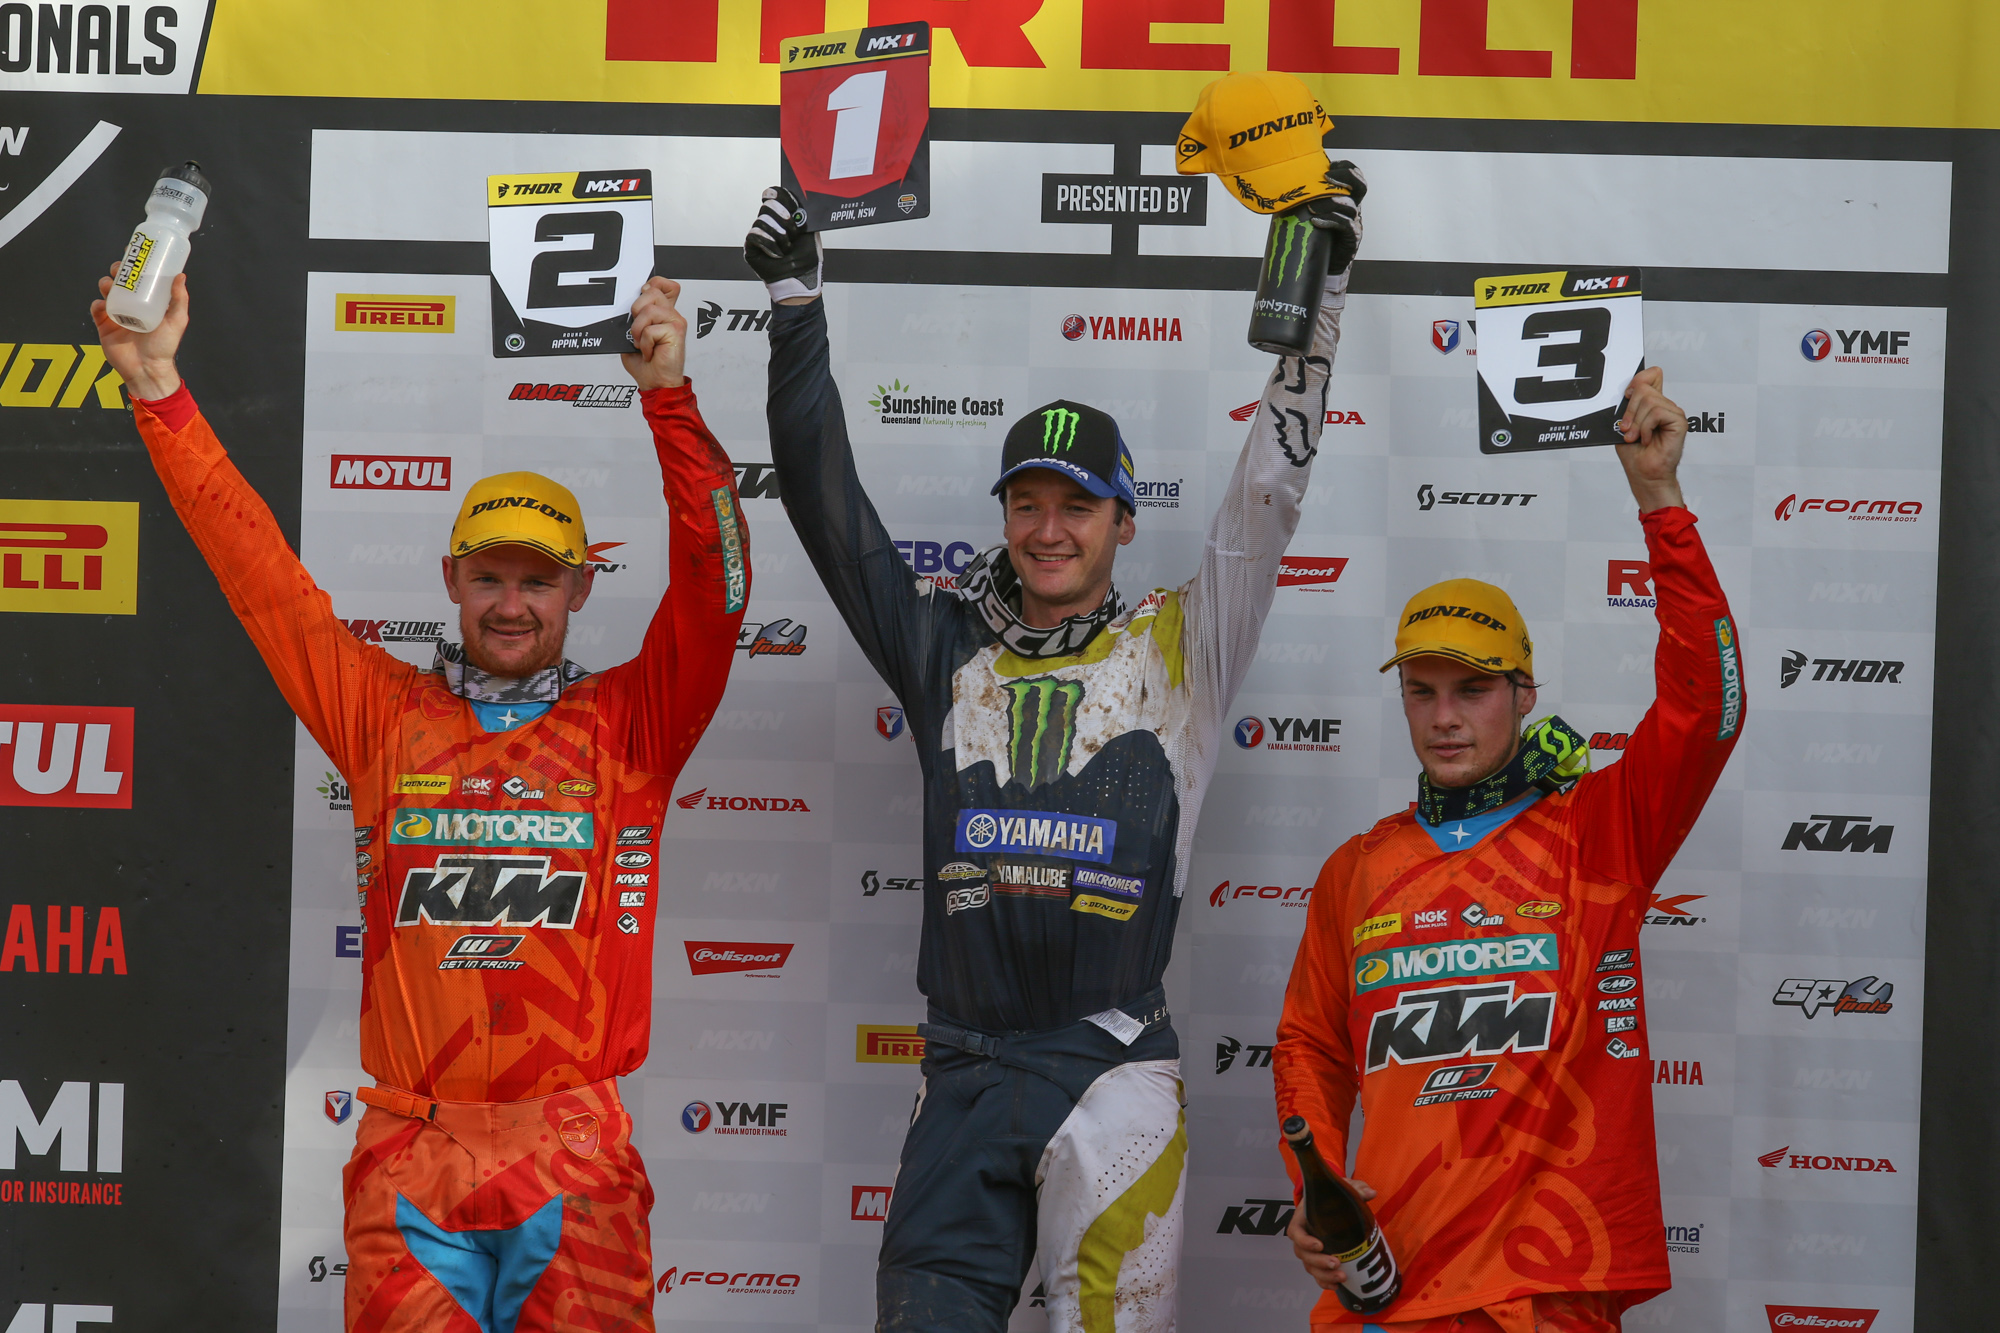 Dean Ferris dominated MX Nationals Round 2 at Appin